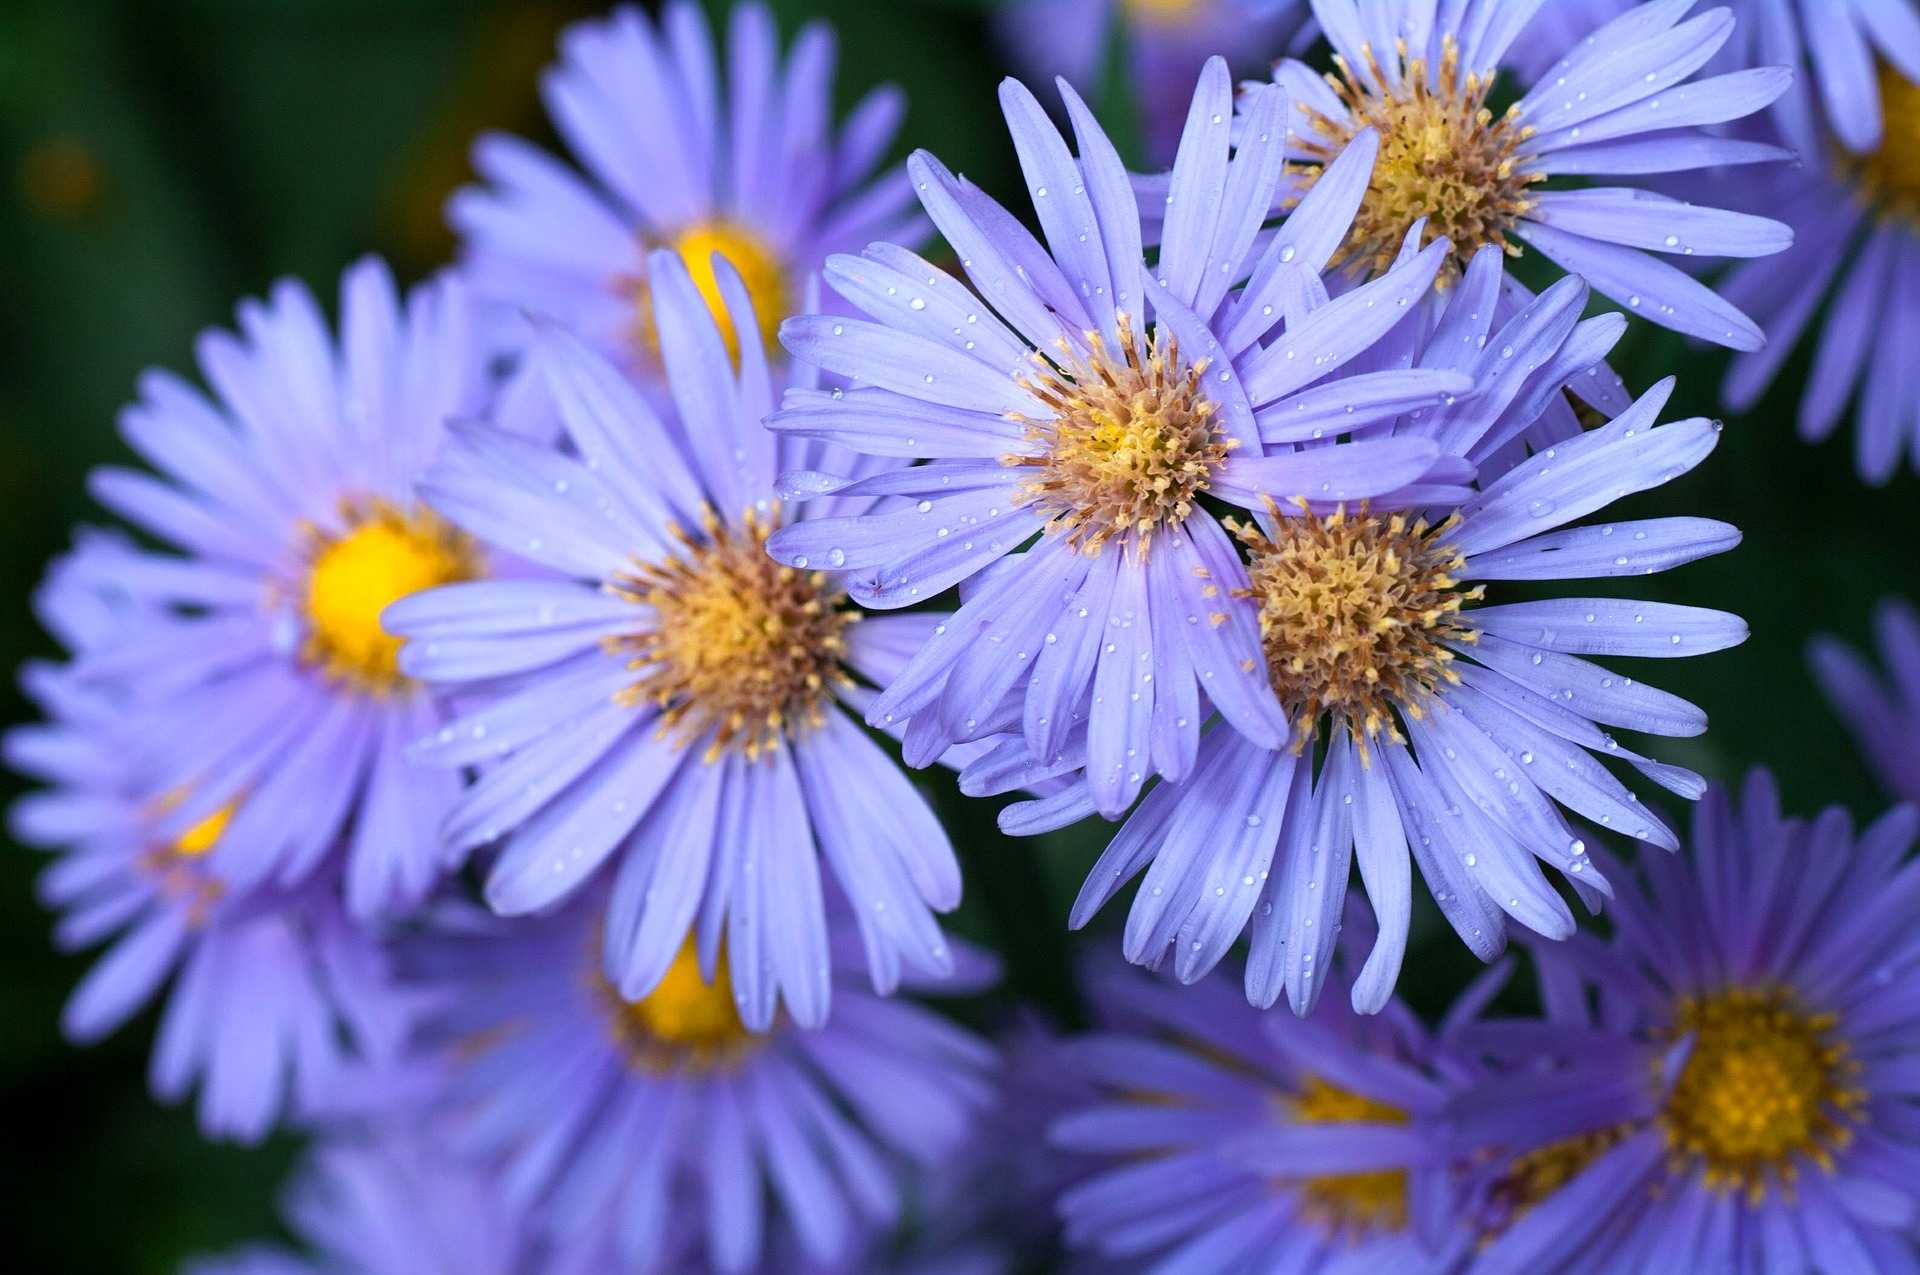 September birth flower the old farmer 39 s almanac Flowers that bloom in september